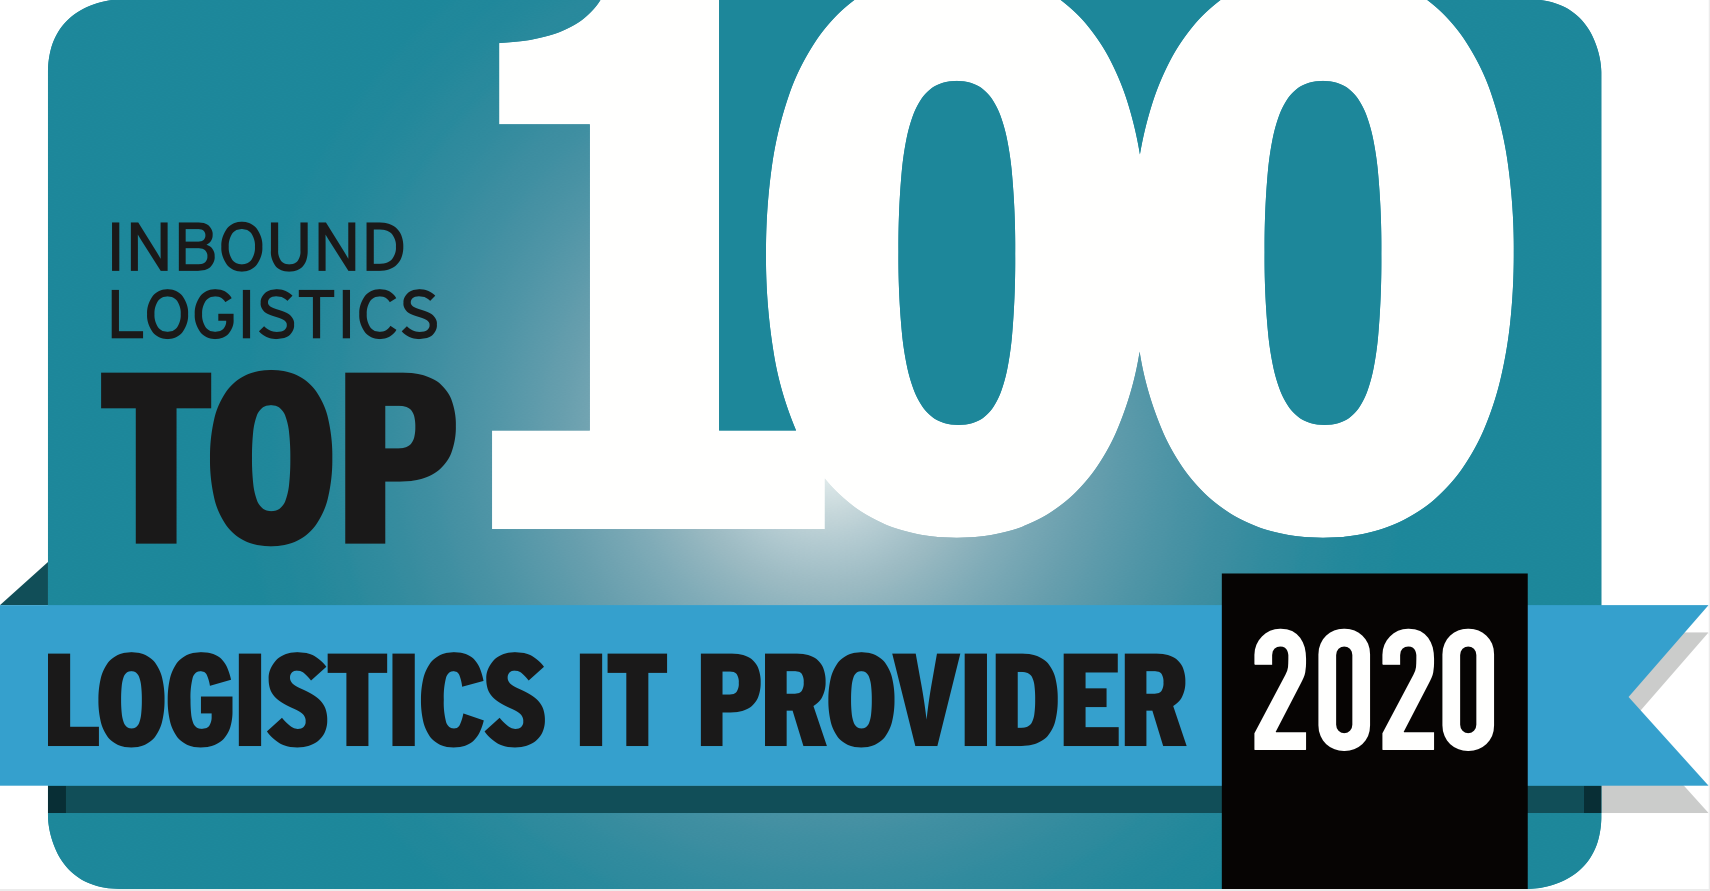 Inbound Logistics Top 100 Logistics IT Provider 2020